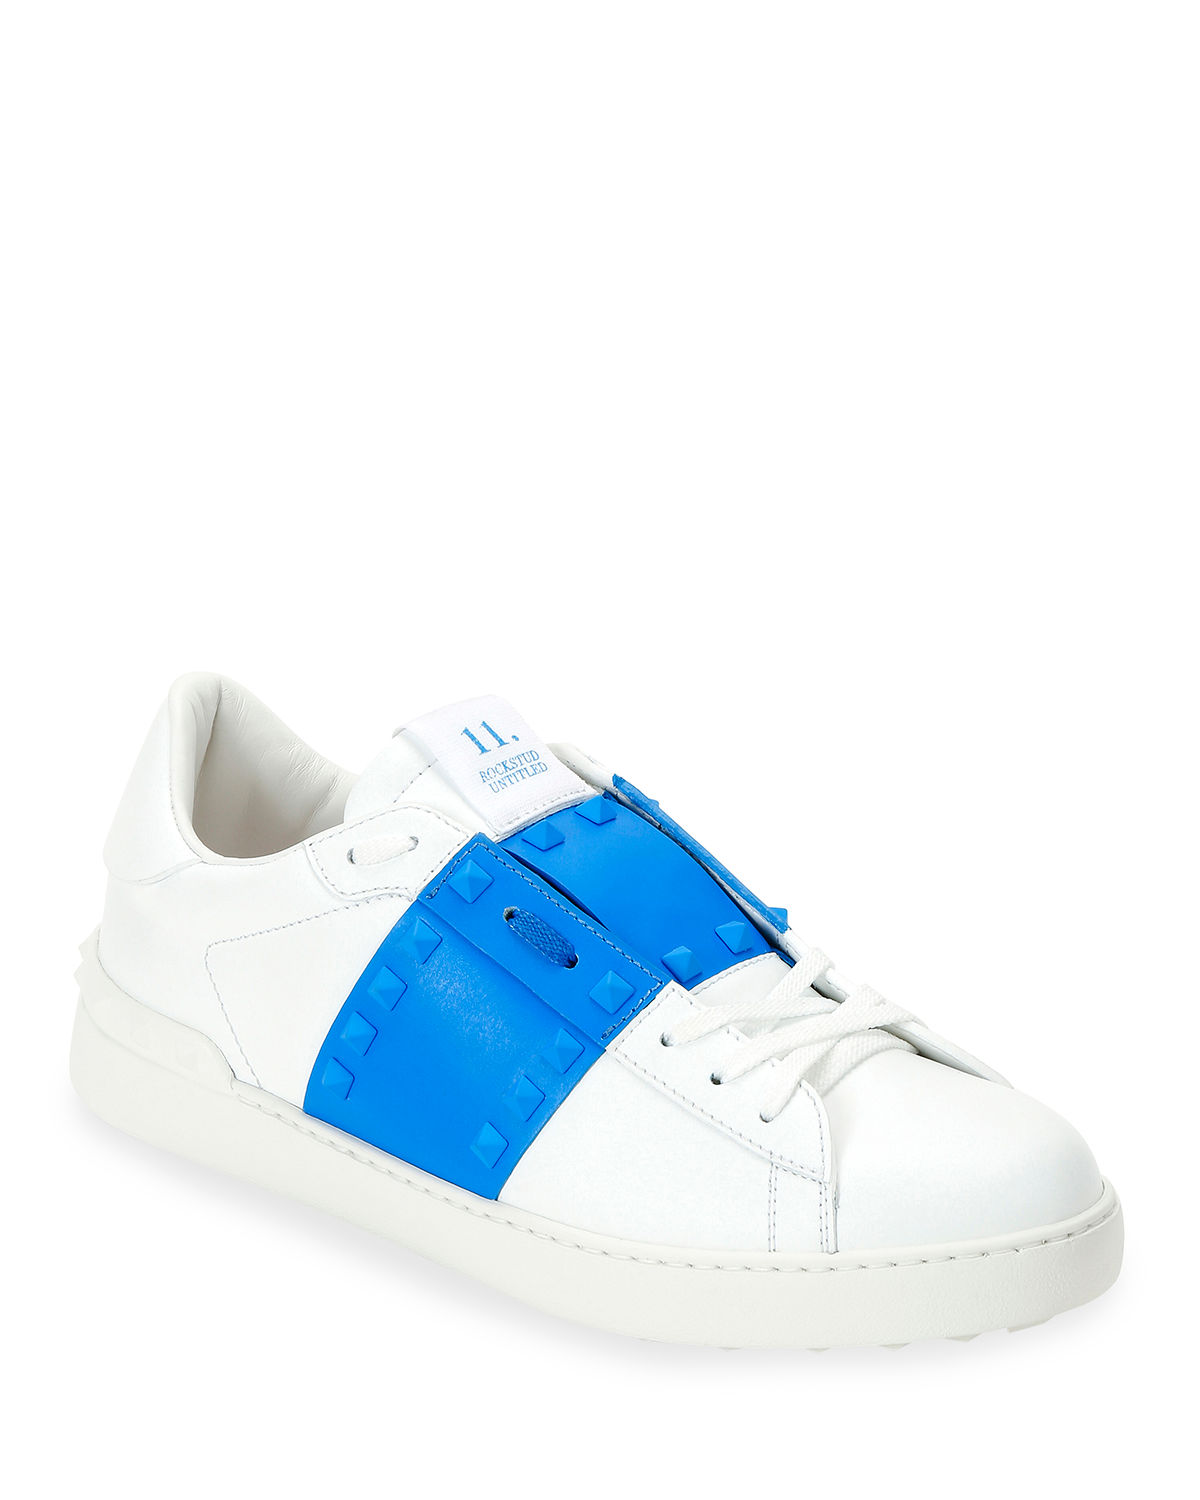 Valentino Sneakers MEN'S ROCKSTUD UNTITLED LEATHER SNEAKERS